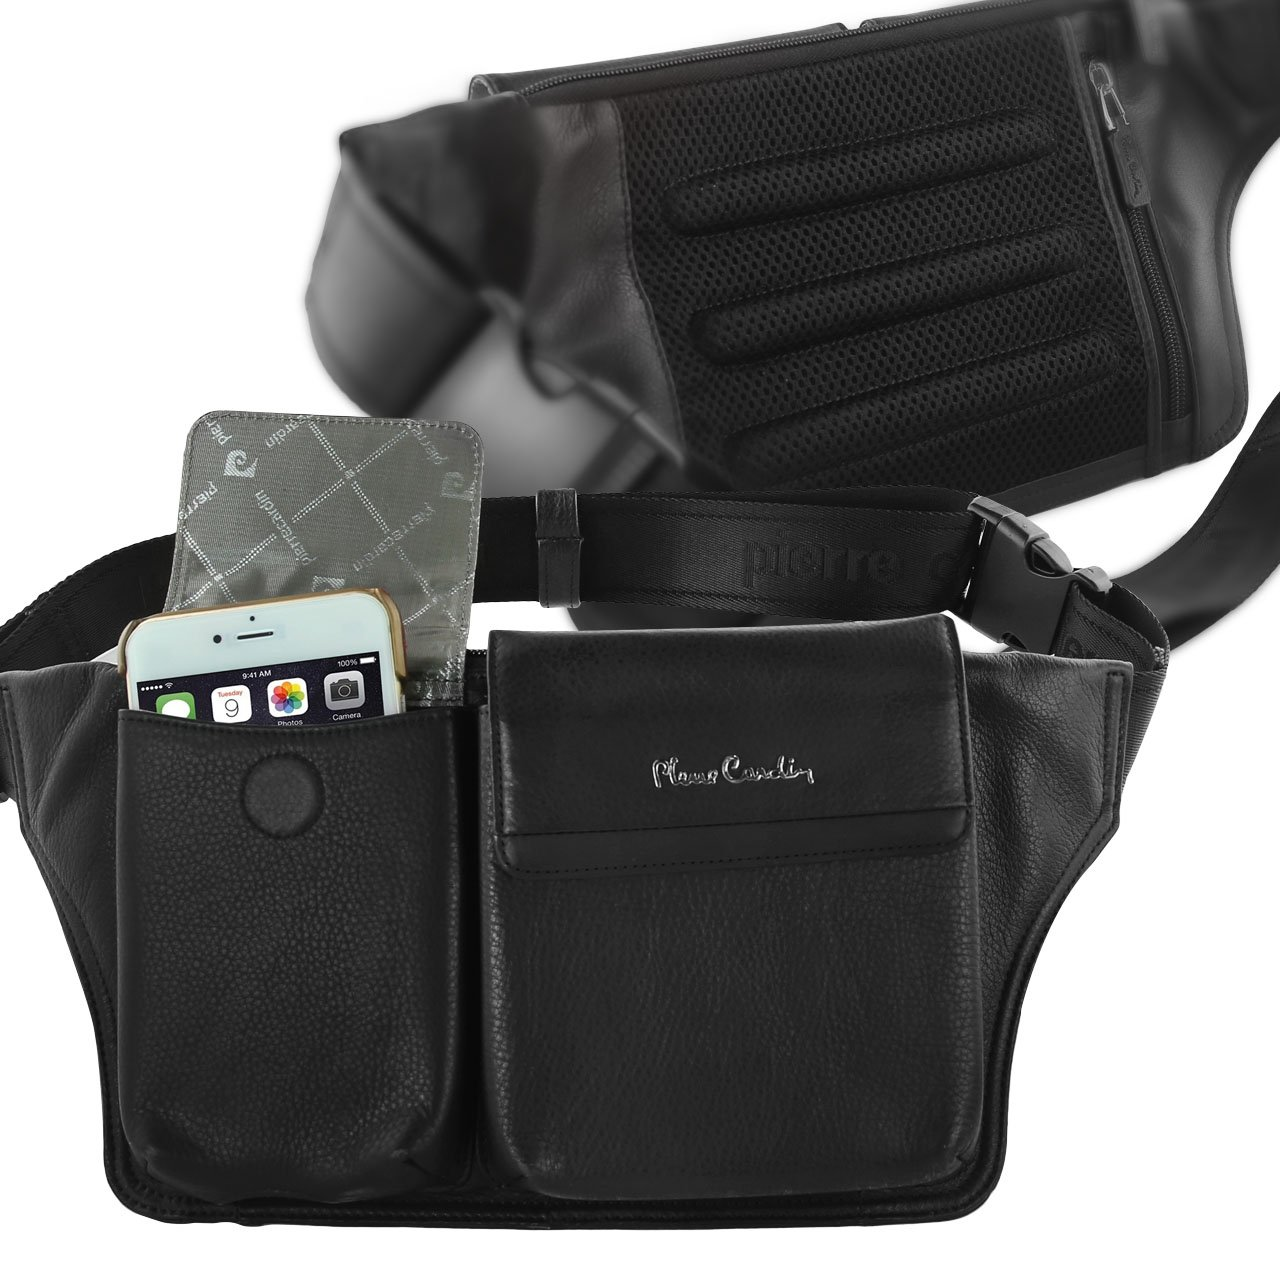 Pierre Cardin Genuine Leather Black Waist Running Belt Bum Bag Fanny Pack Pouch for Apple iPhone 6 6s / iPhone 6s Plus by Pierre Cardin